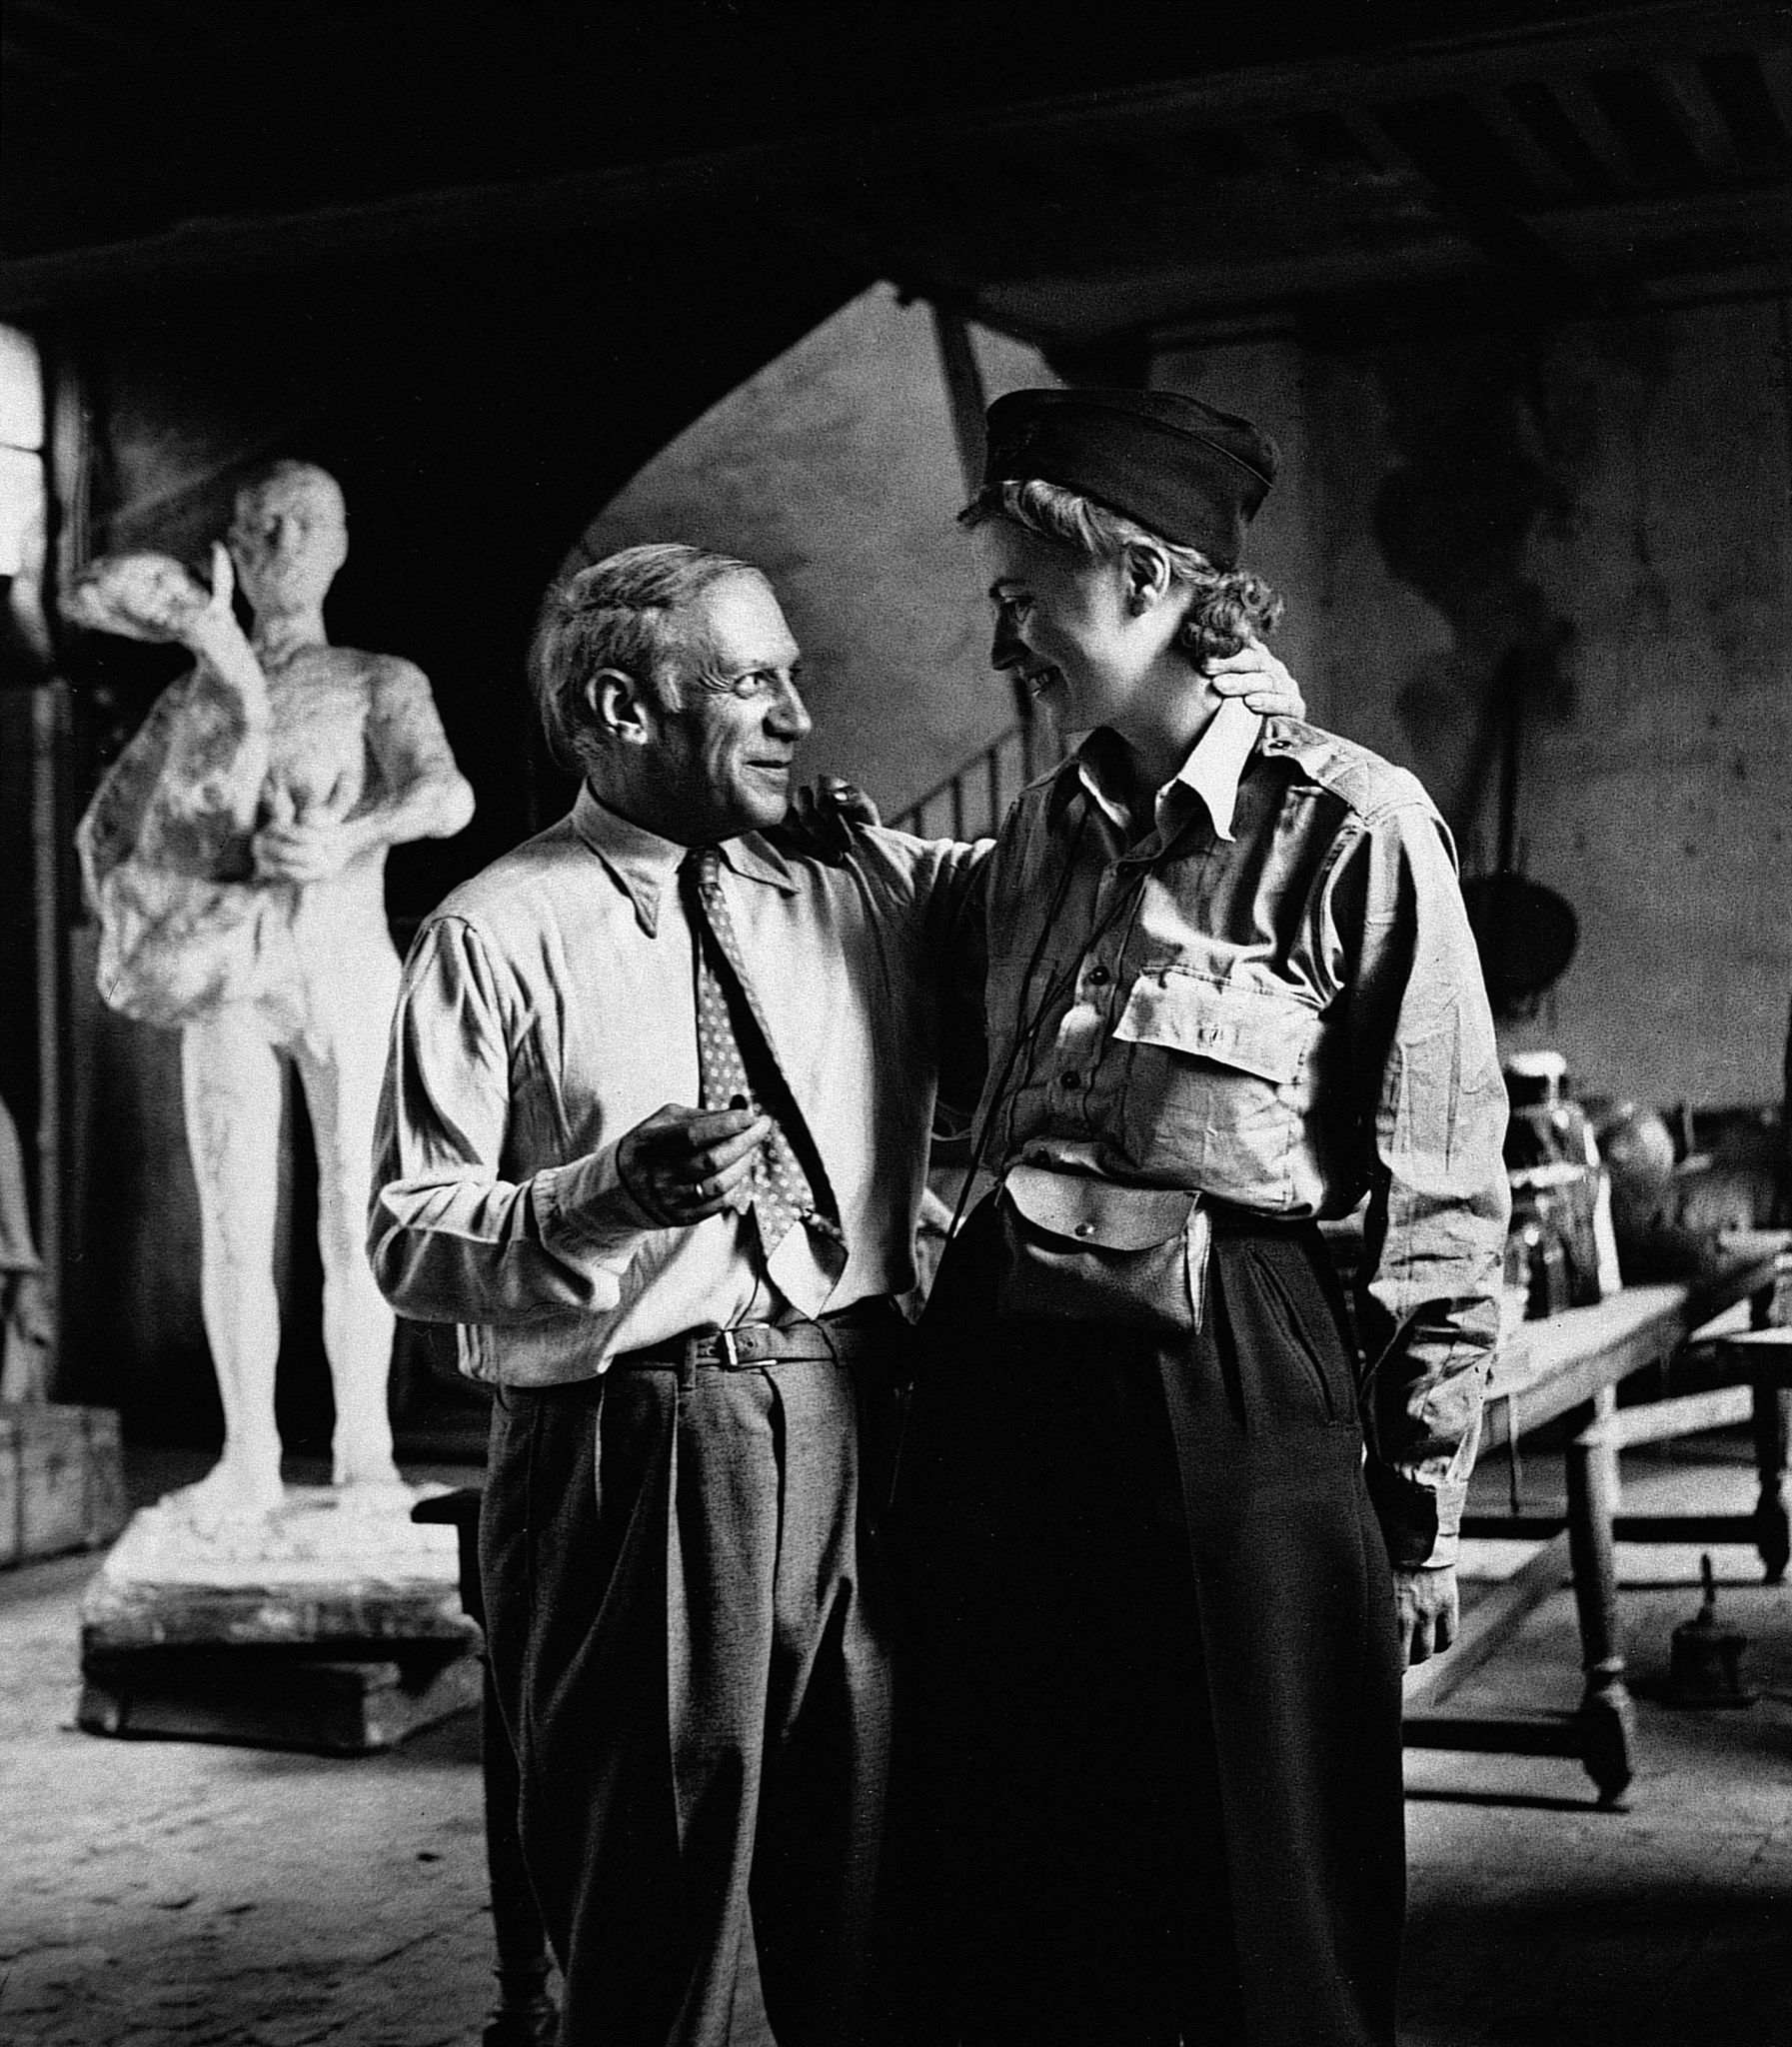 Lee Miller e Picasso depois da libertação de Paris, por Lee Miller, Paris, França, 1944 / Cortesia National Galleries of Scotland